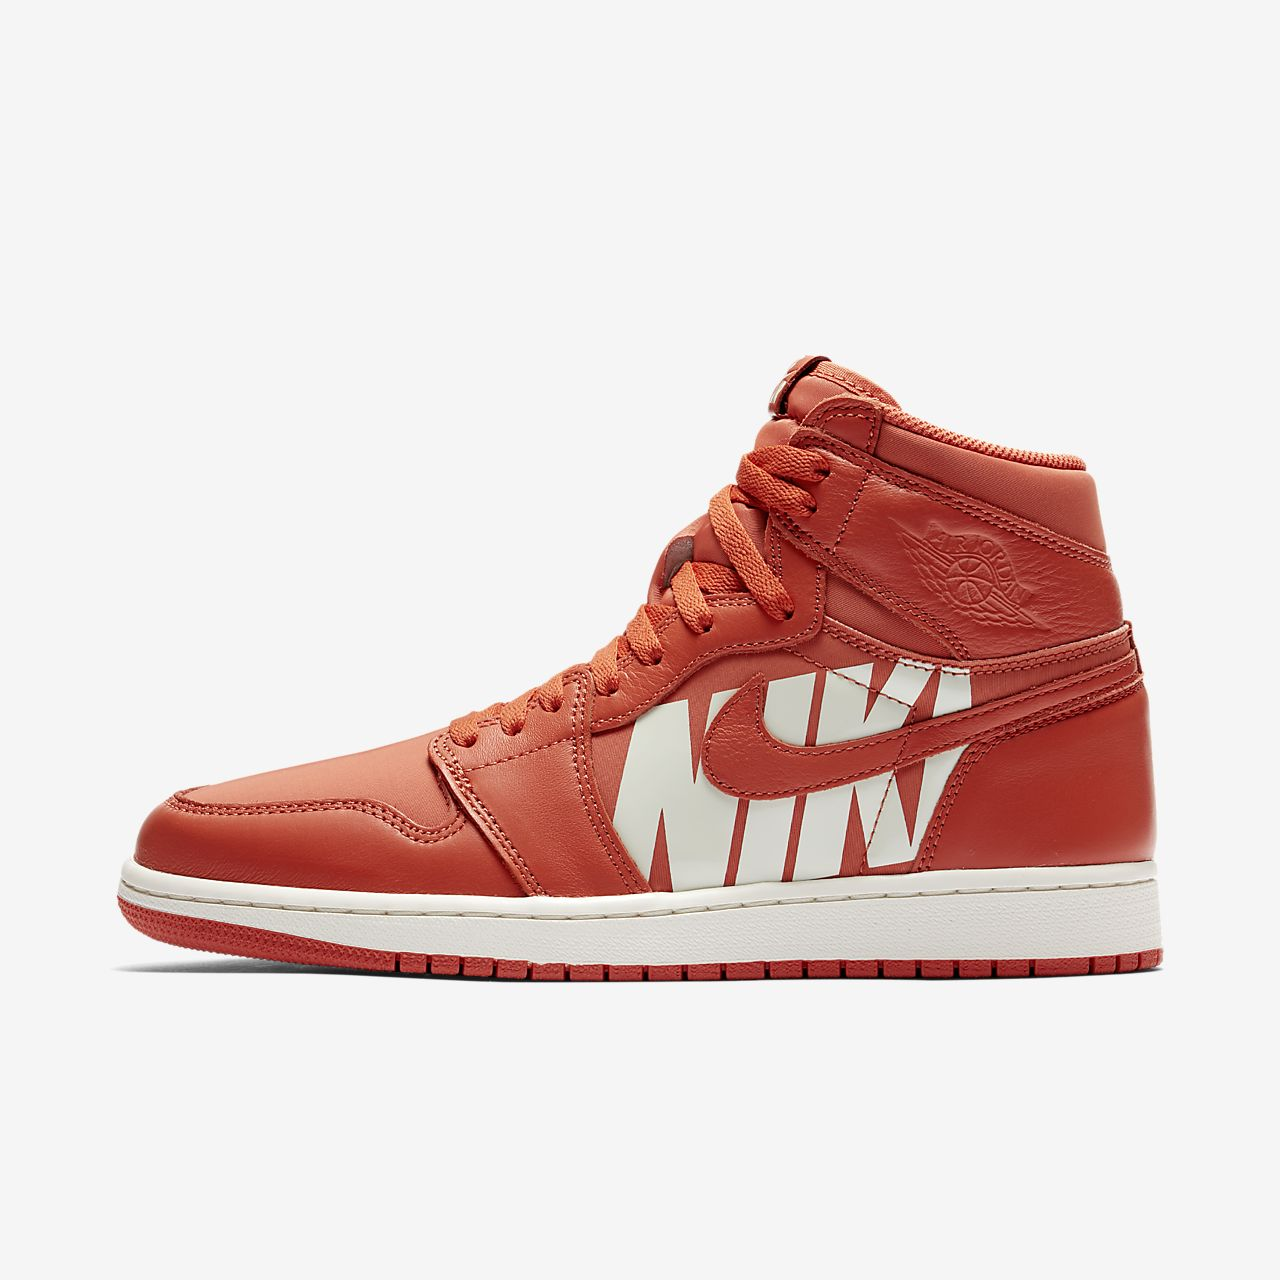 new styles b354b 70a96 ... Air Jordan 1 Retro High OG Shoe